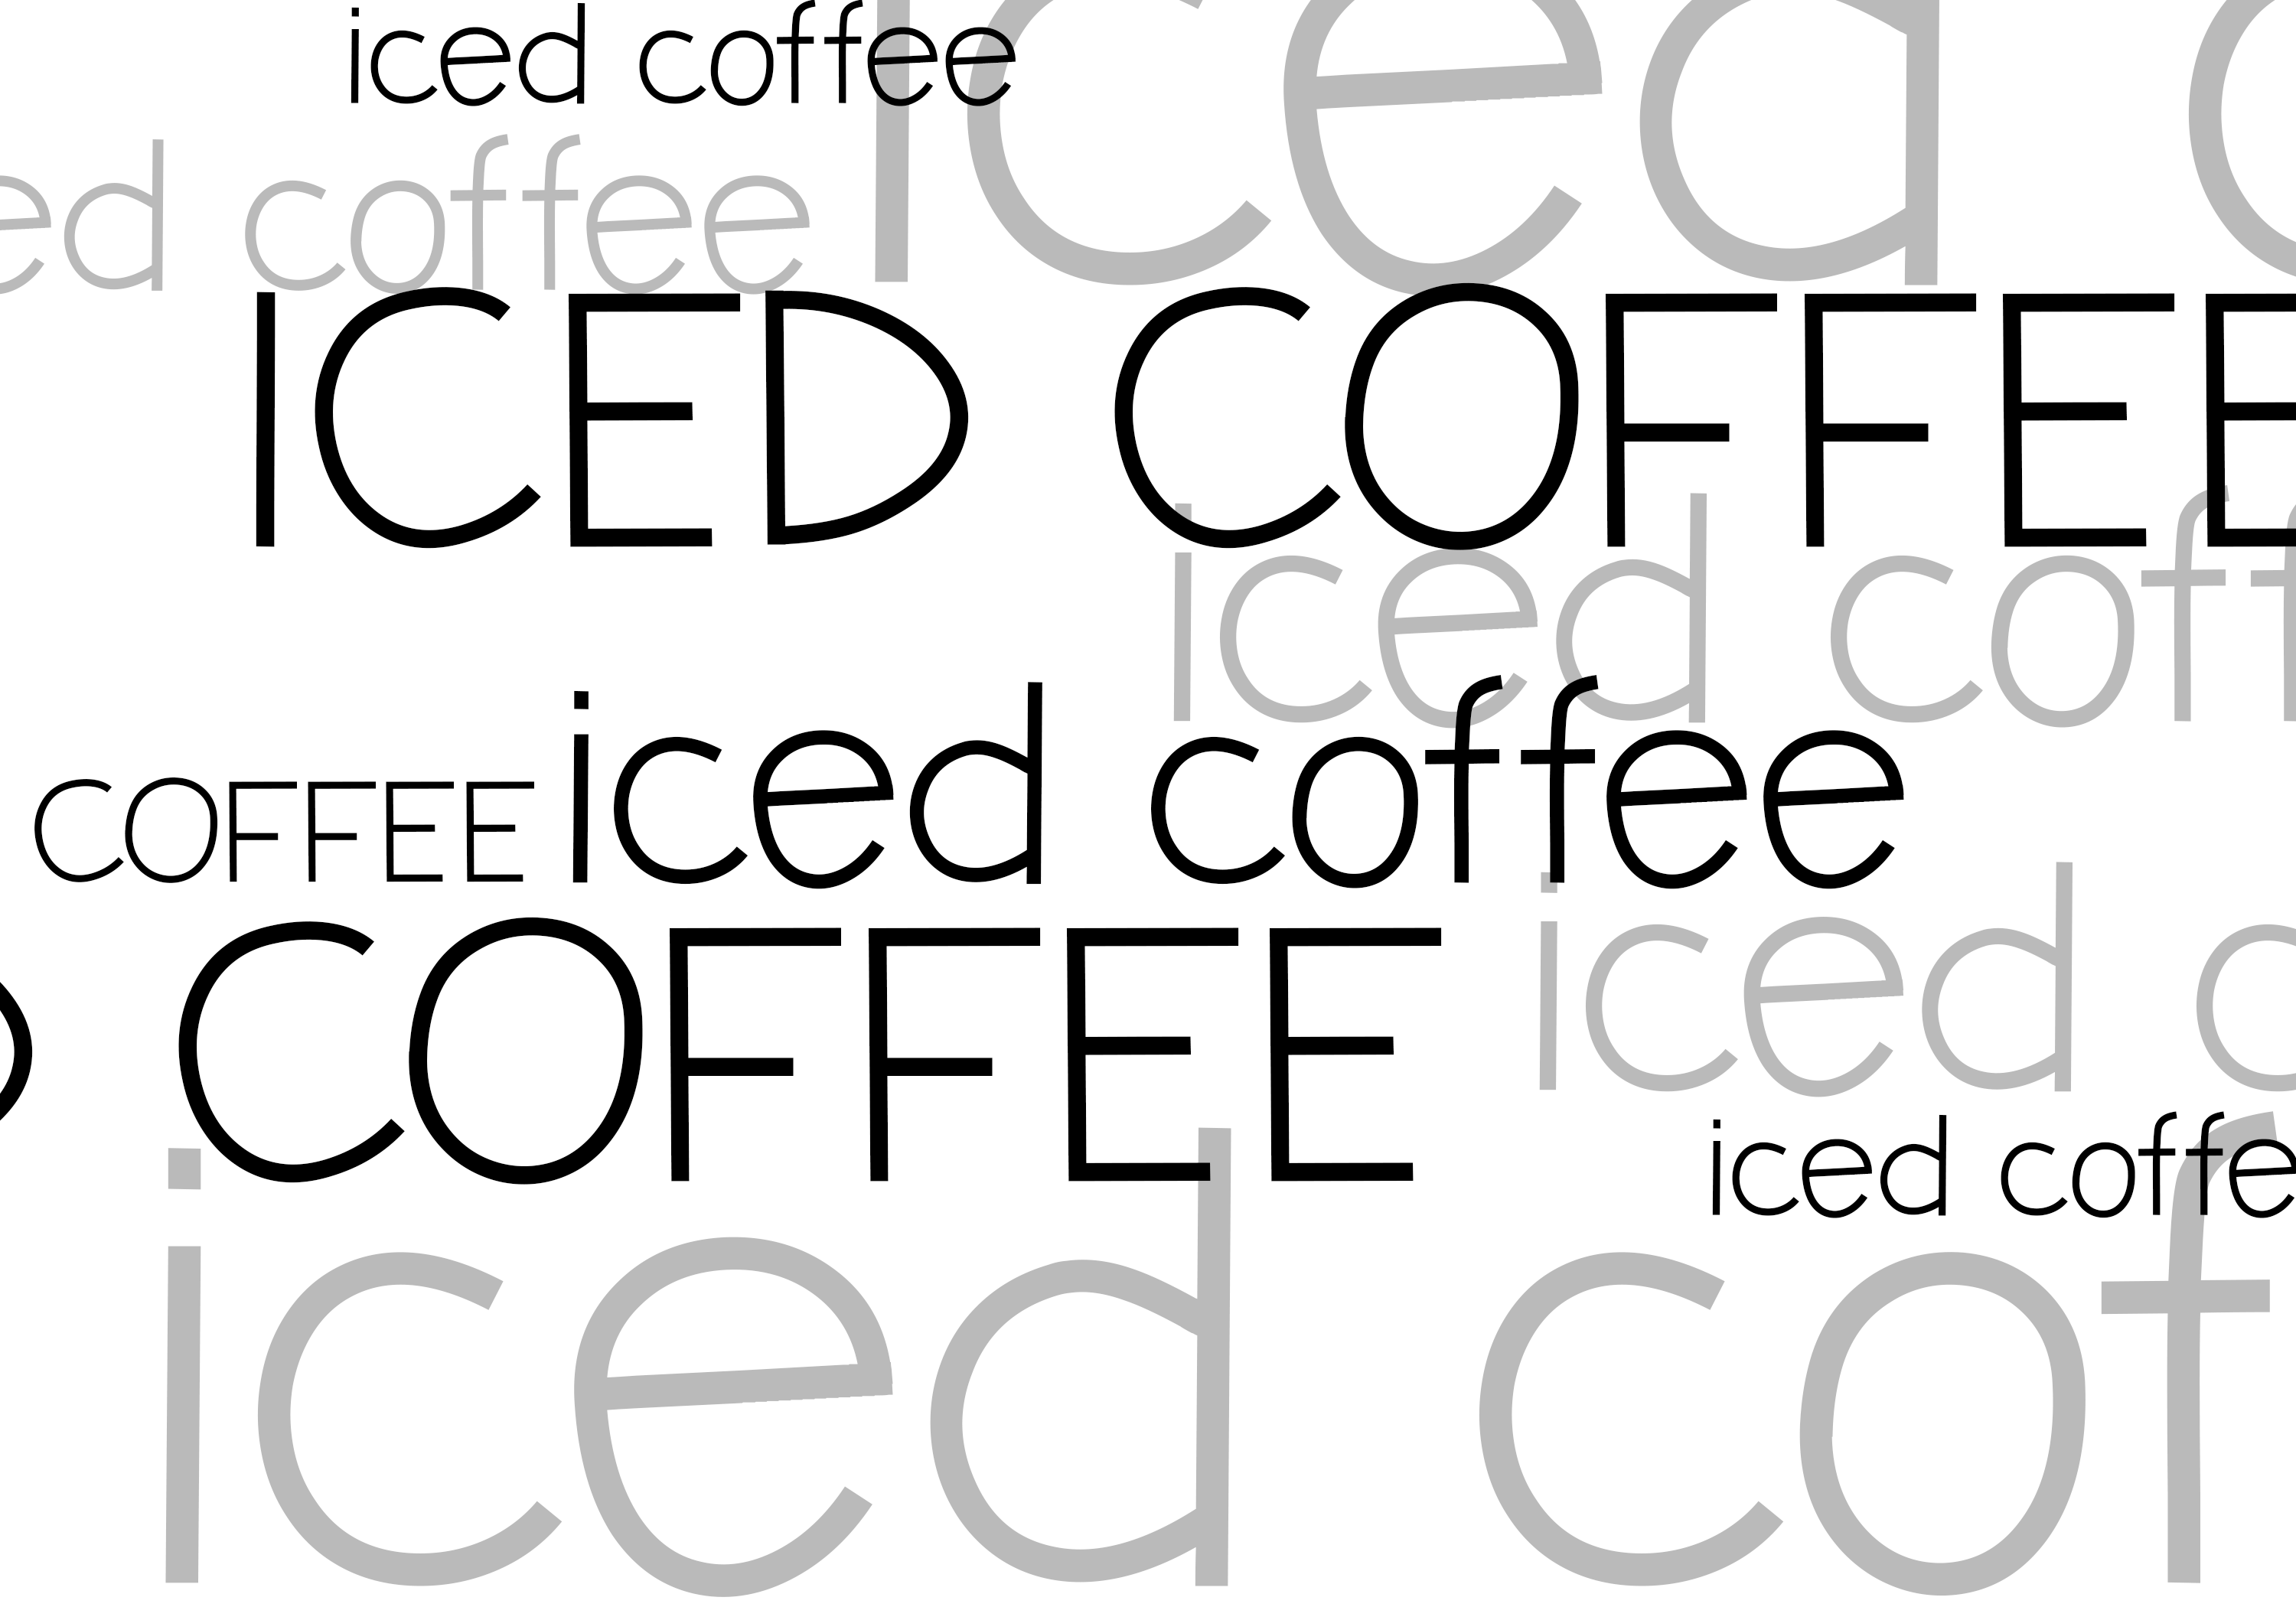 Iced Coffee - A Handwritten Font example image 6